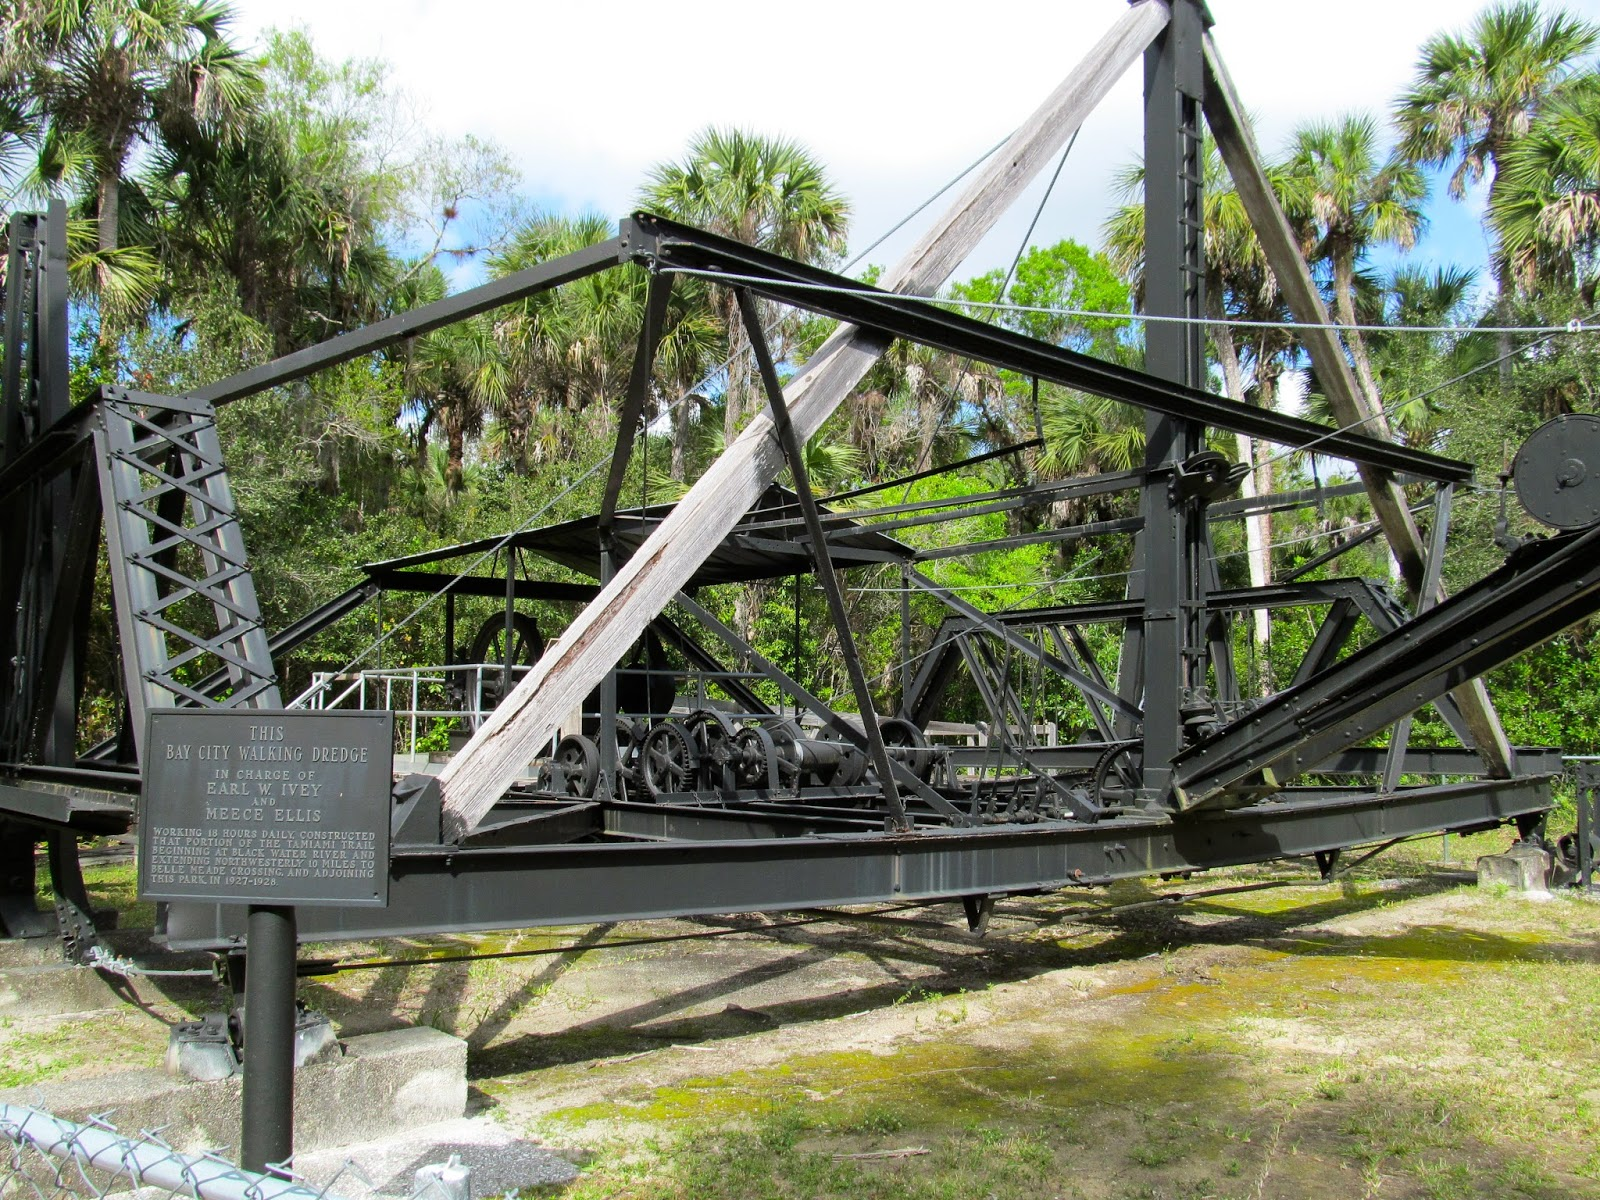 Bay City Walking Dredge at Collier-Seminole State Park, Naples, FL